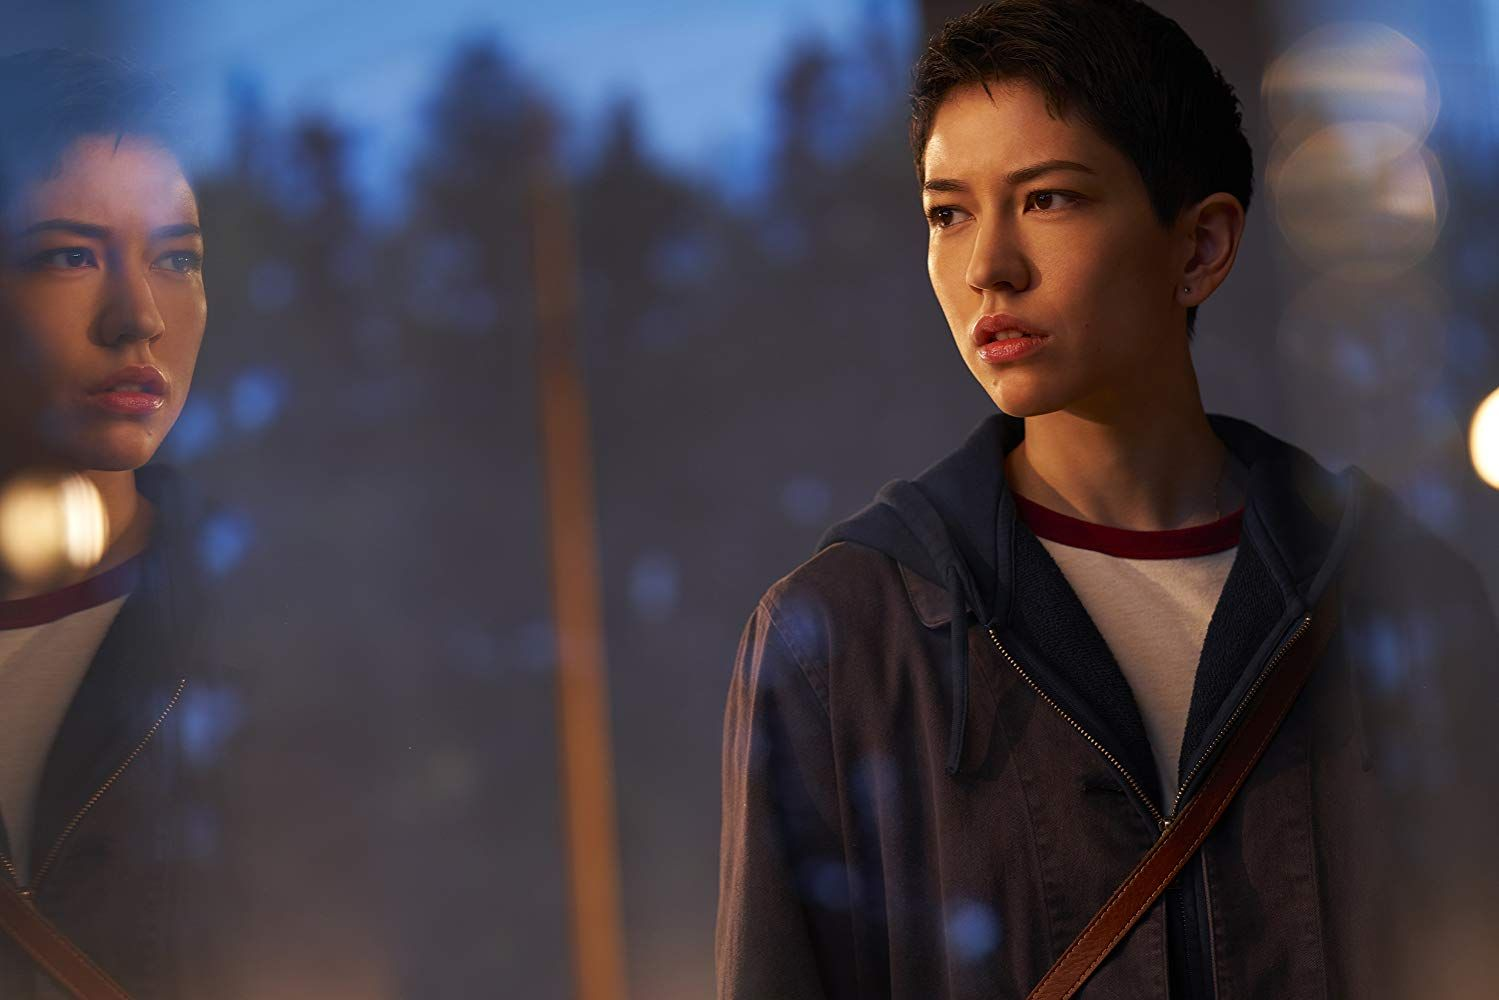 Sonoya Mizuno as Lily Chan in Devs (2020)